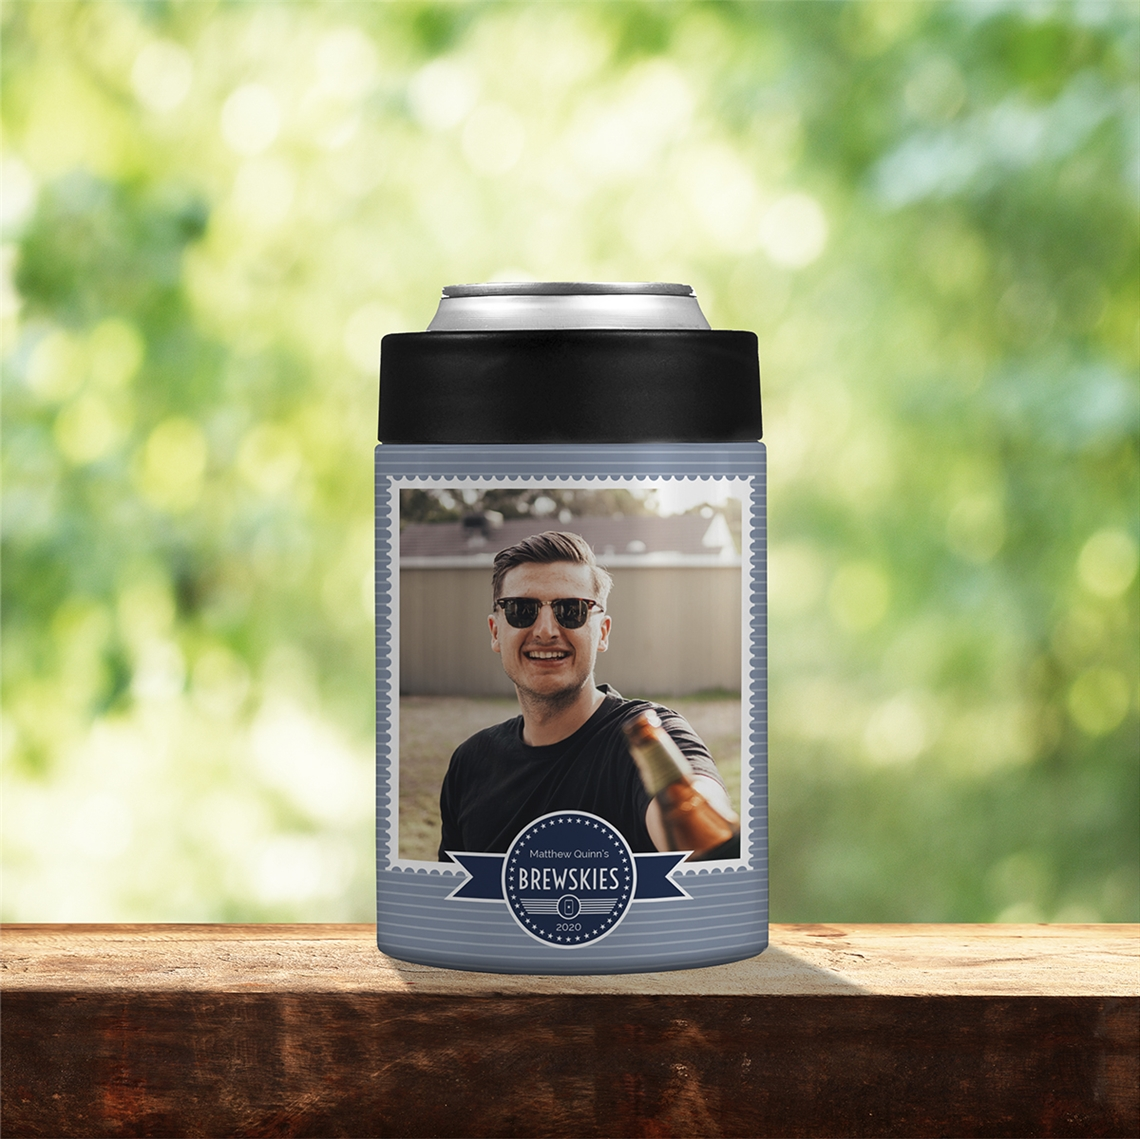 Picture of Brewskies Stainless Steel Koozie